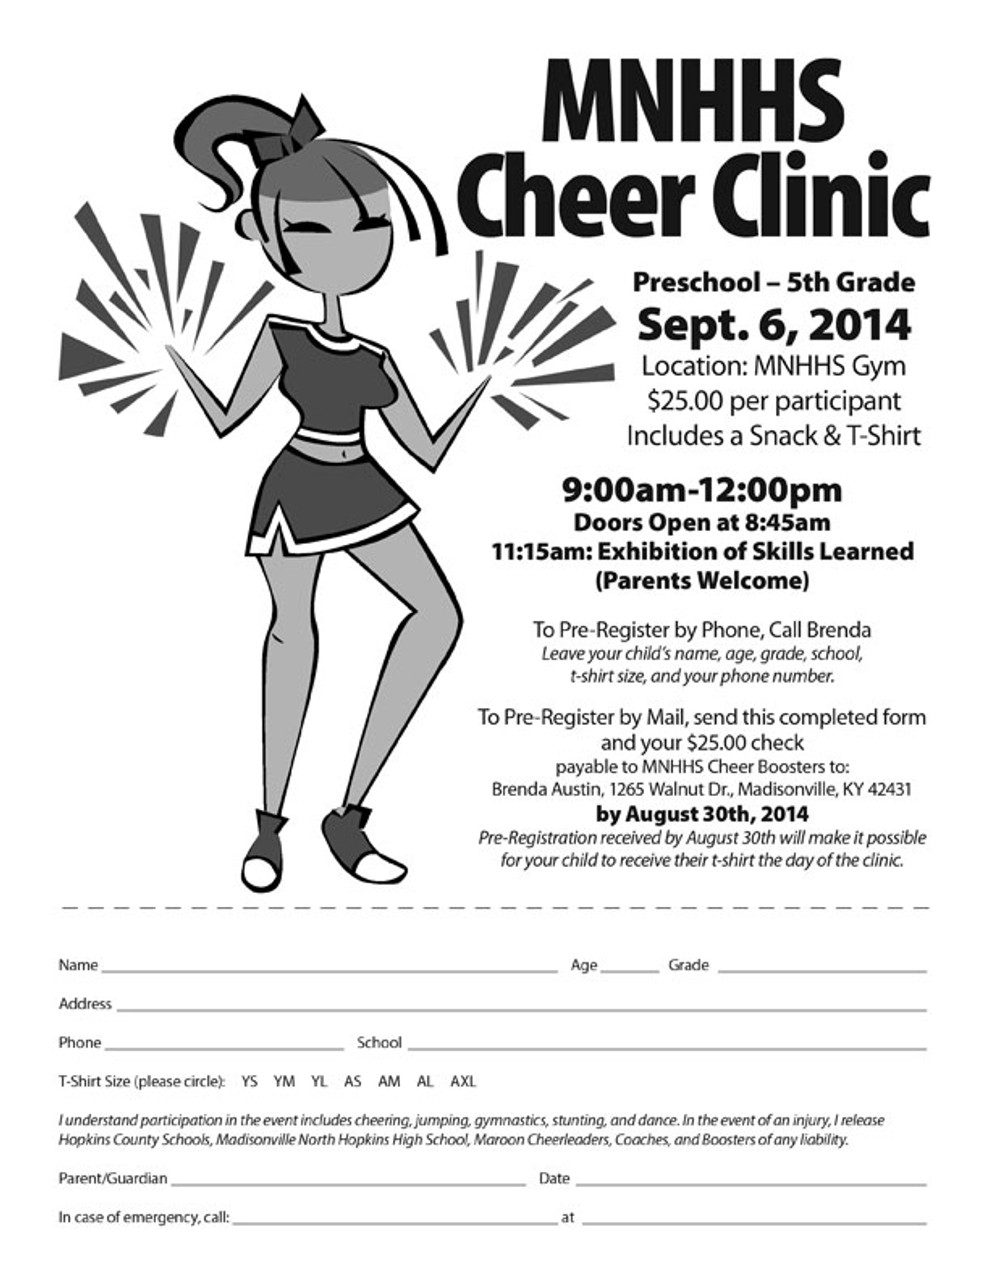 Black & White copies are ideal for registration forms!